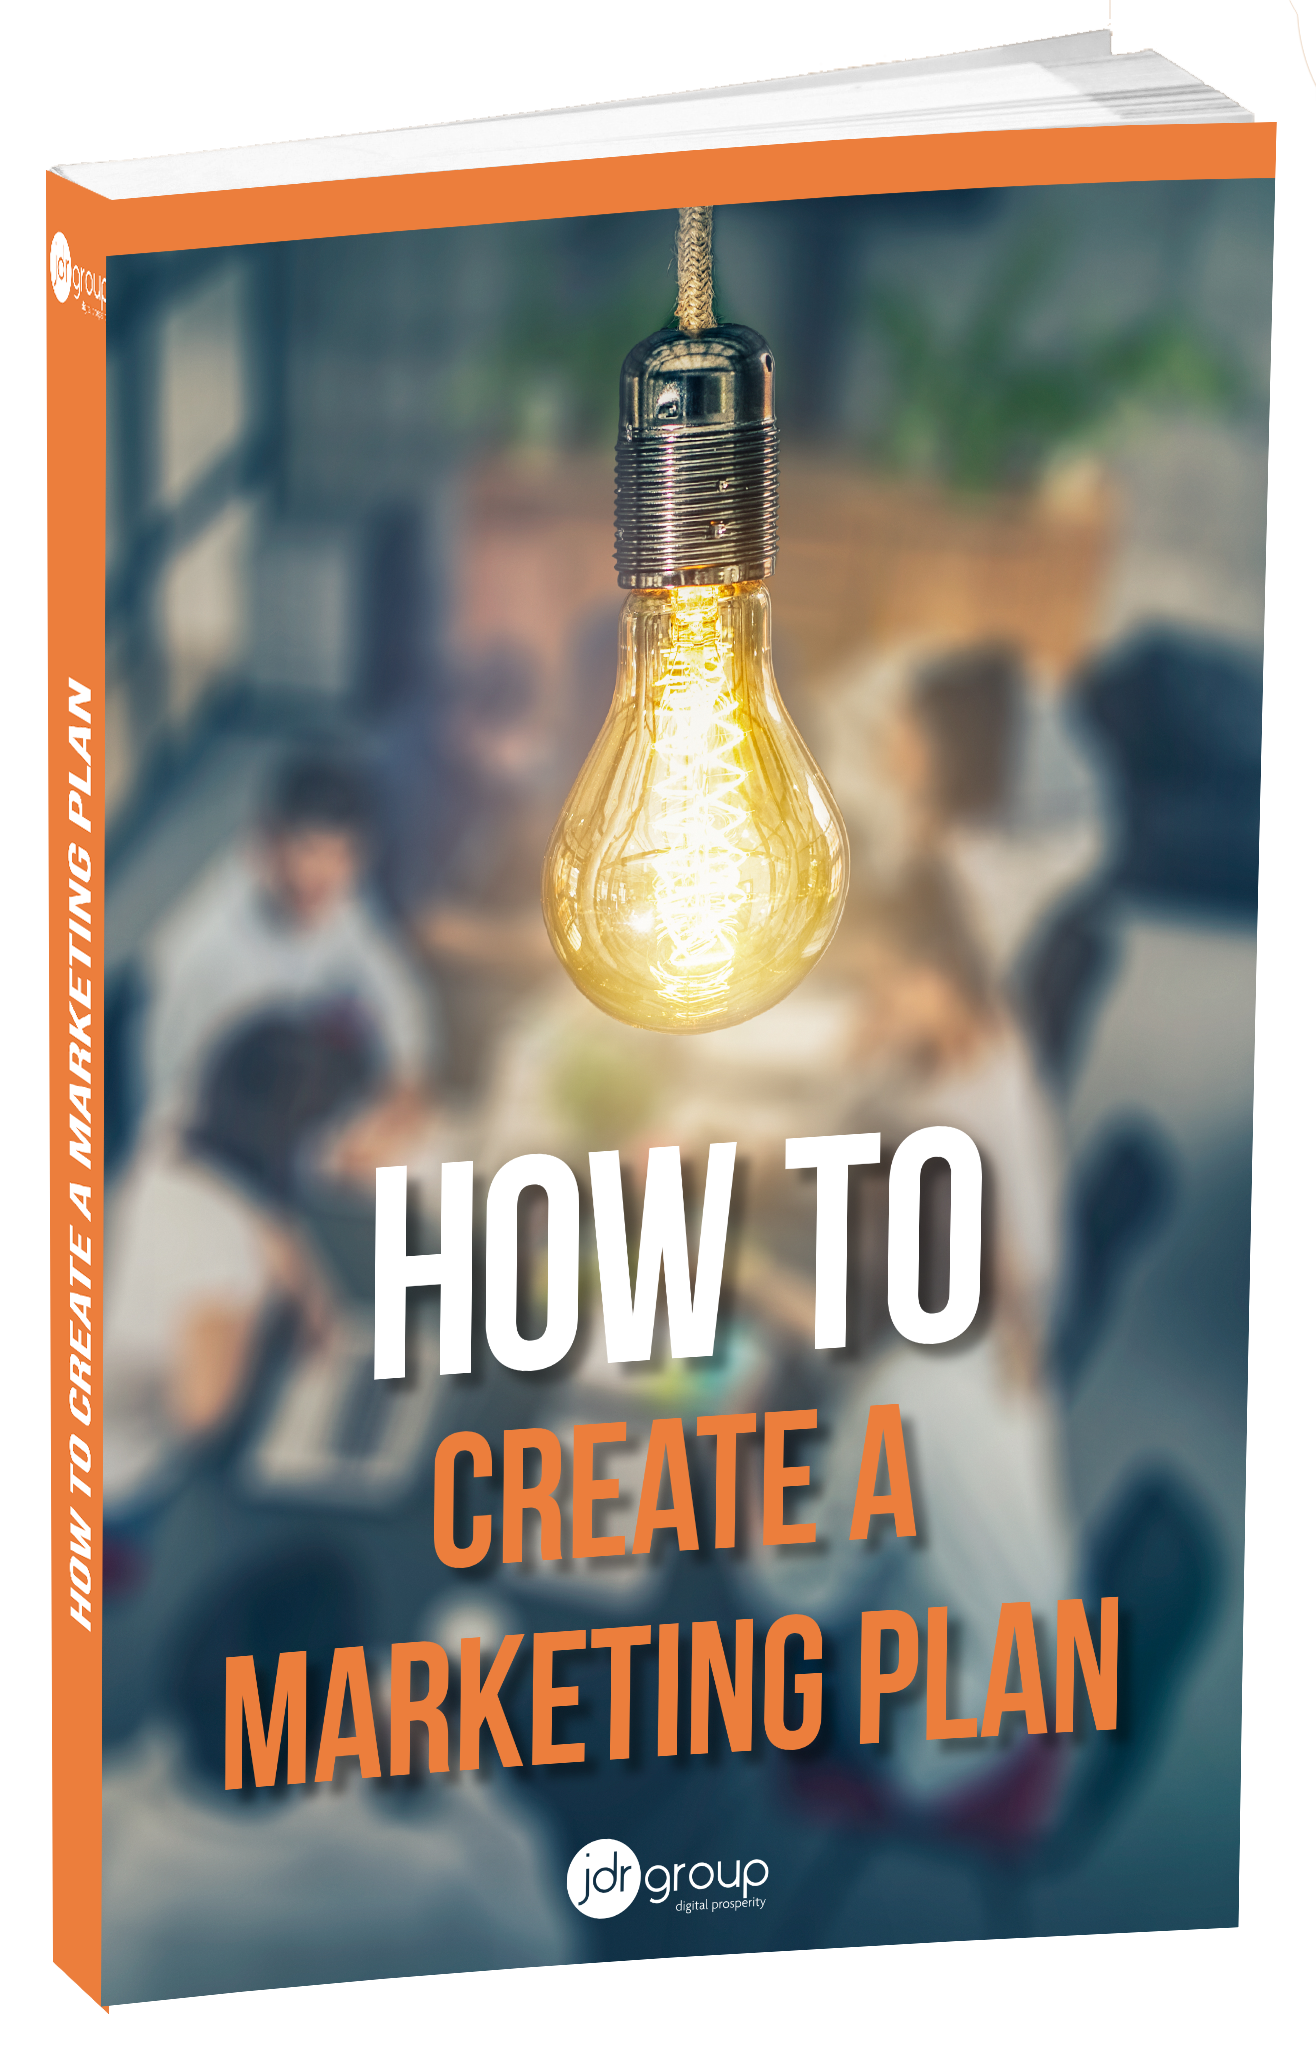 How to create a marketing plan Cover